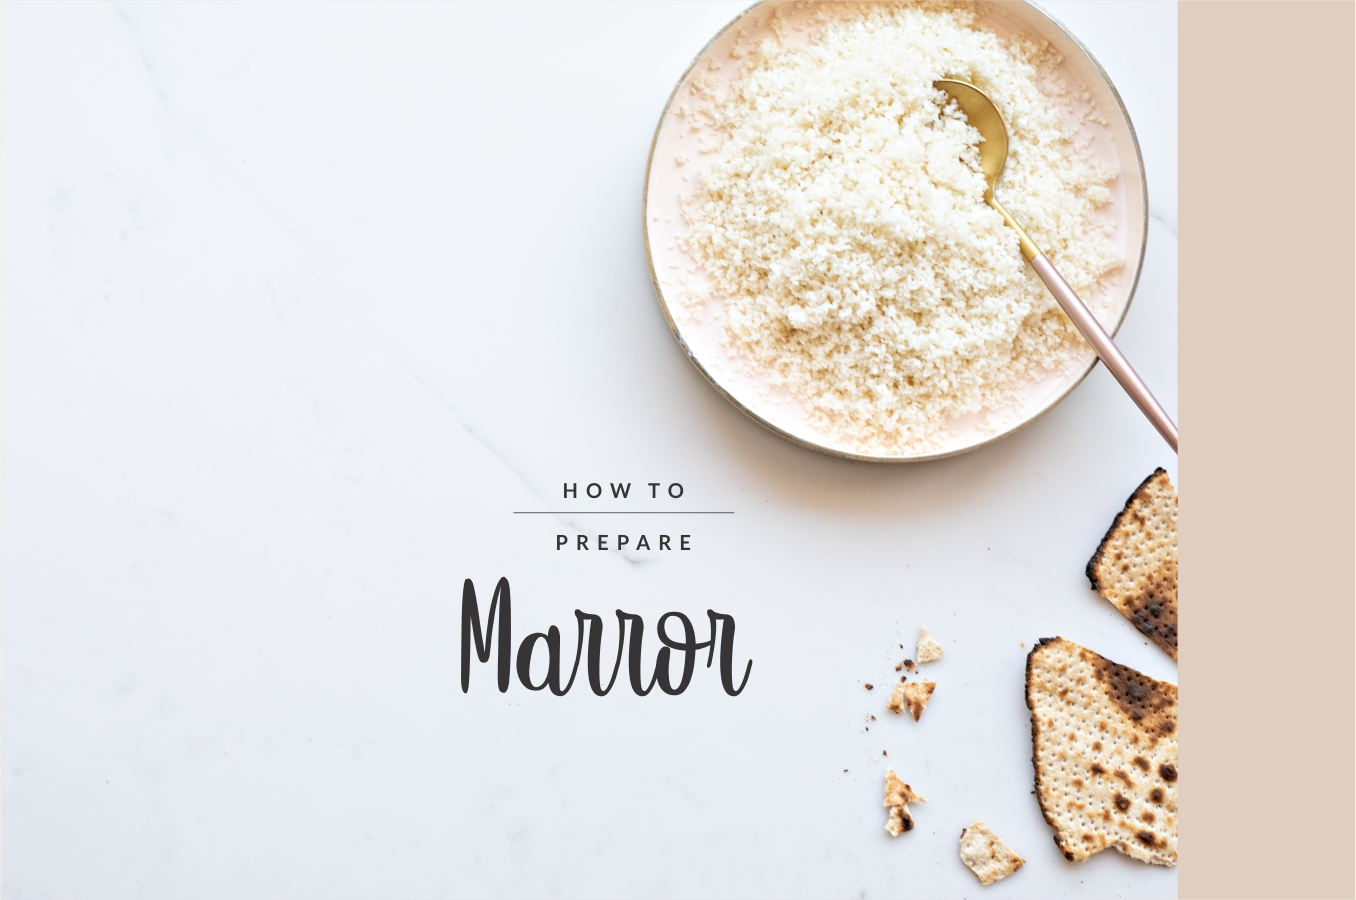 Basics: How to Prepare Marror (Horseradish/Bitter Herbs) Marror. You might need to prepare it once a year only, but you still need to know how to do it. Right? Here's how.